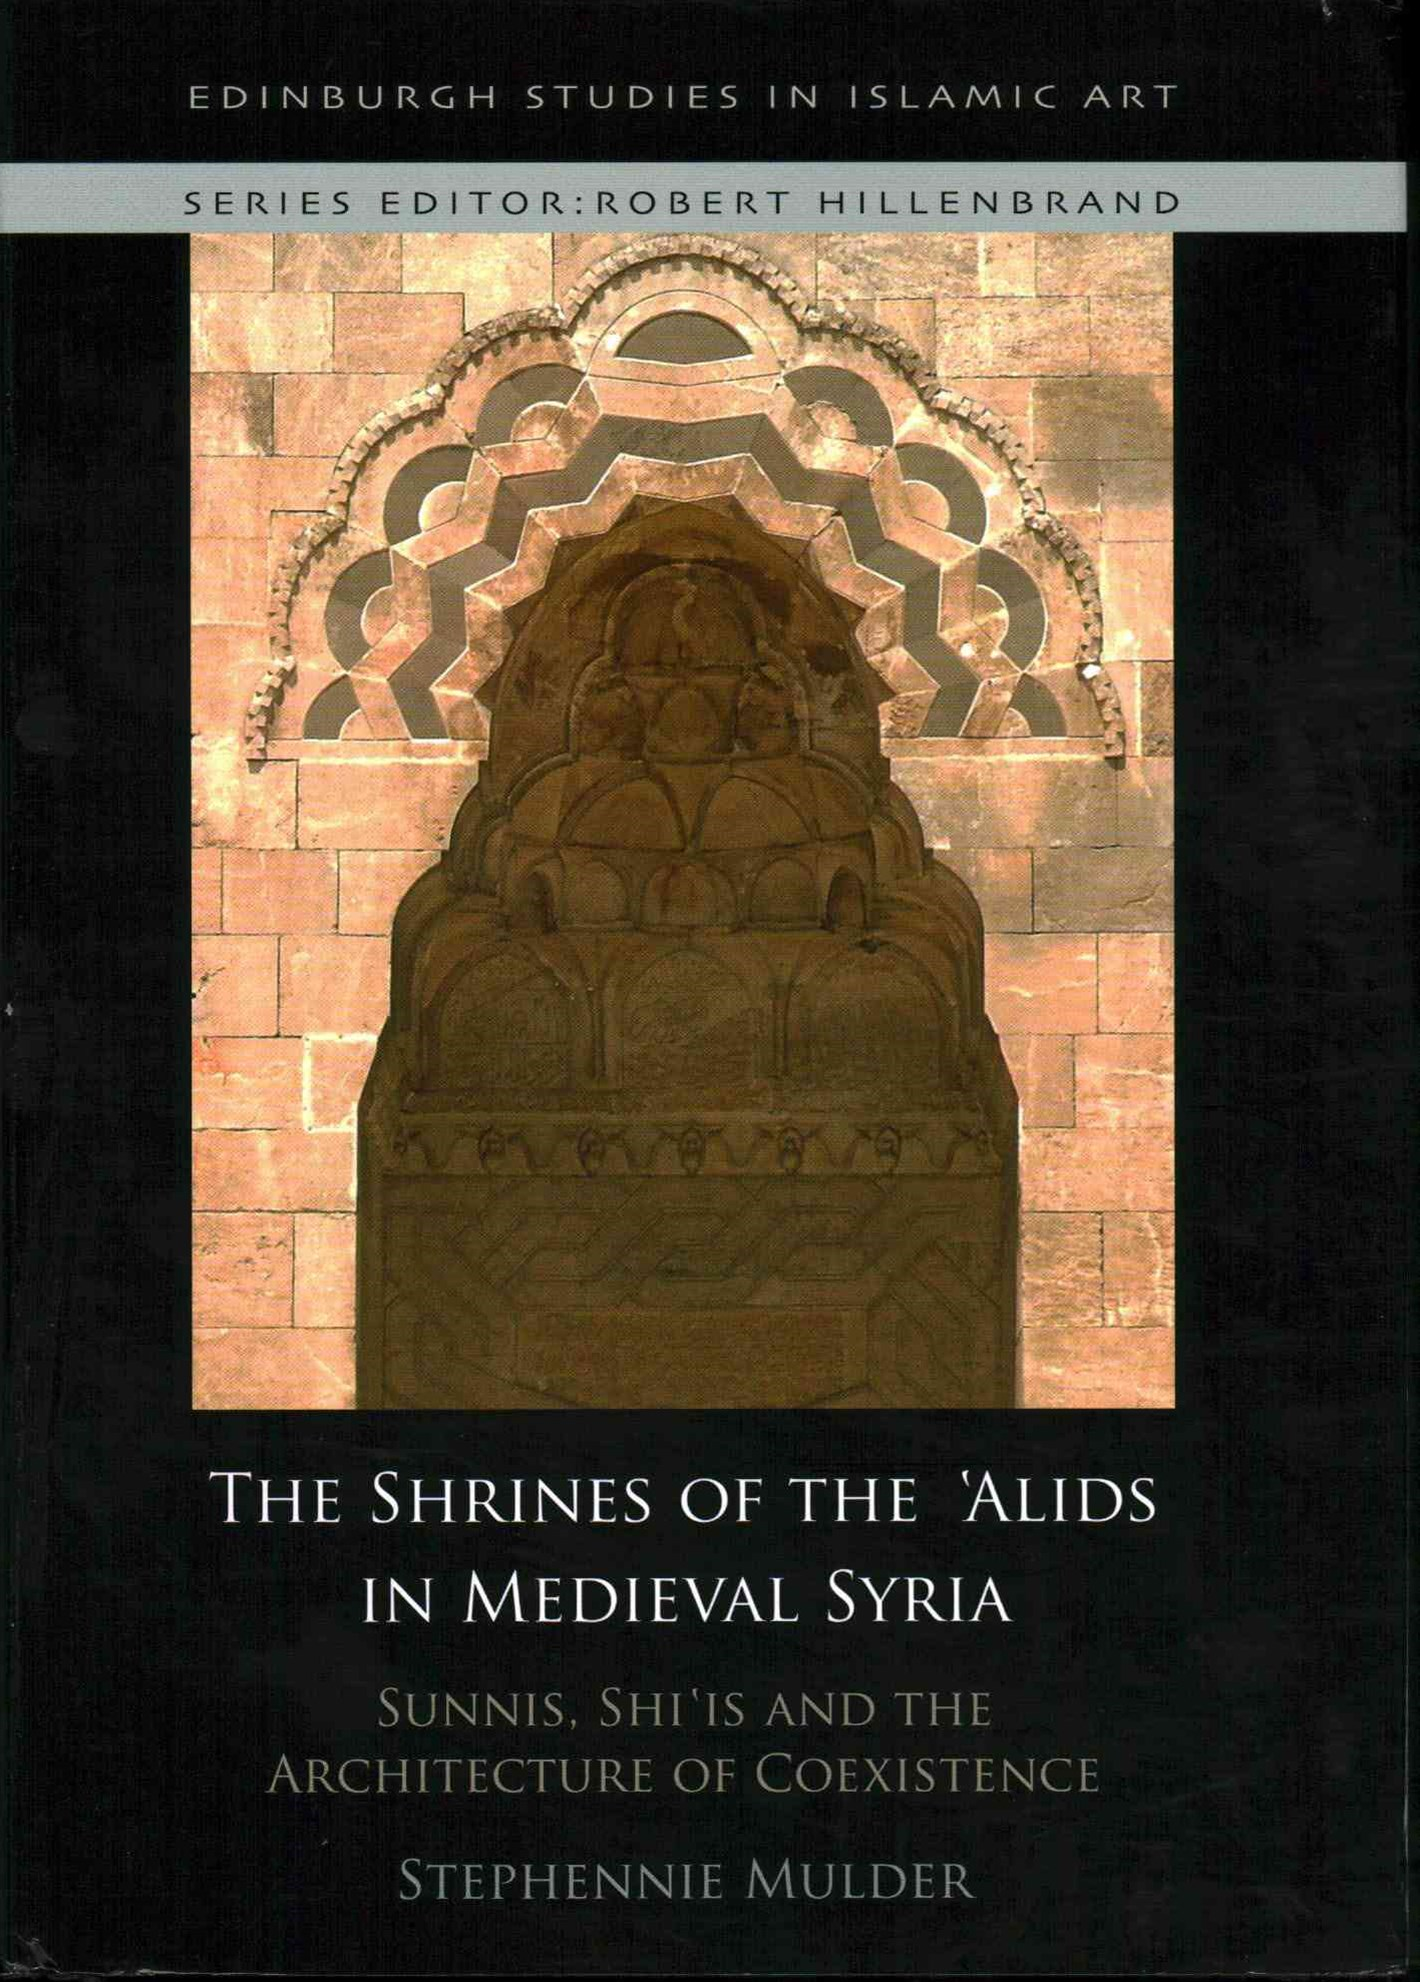 The Shrines of the 'Alids in Medieval Syria